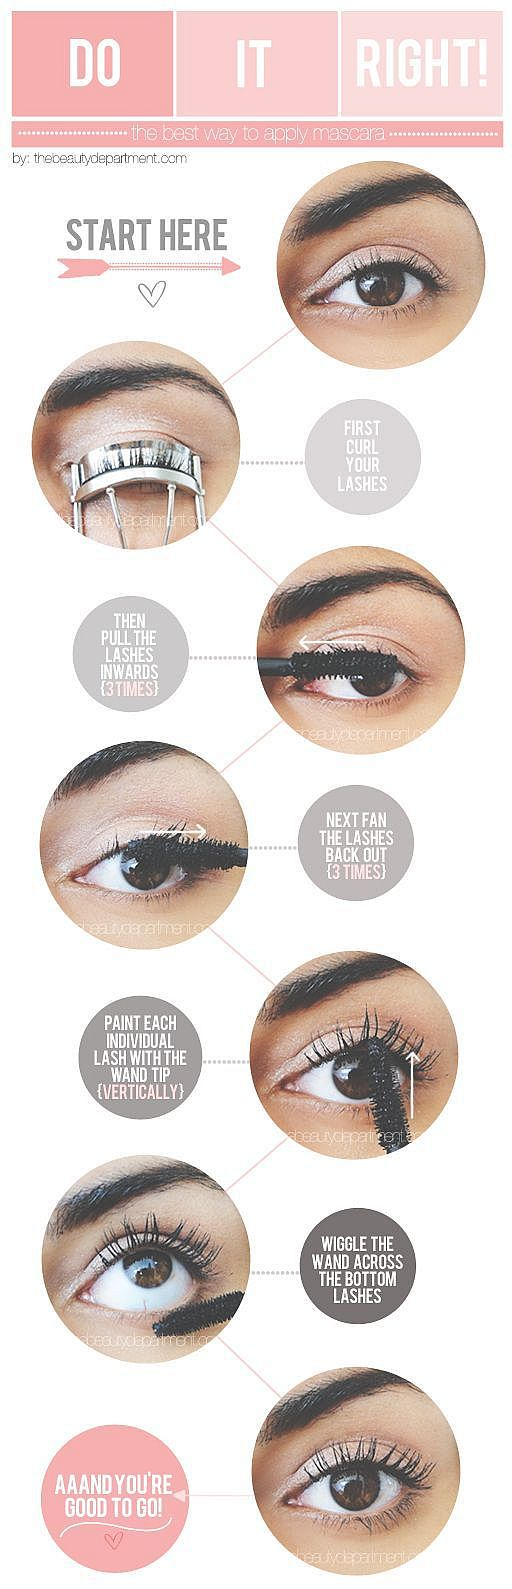 How To Apply Mascara Perfectly Mascara Tips For Beginners